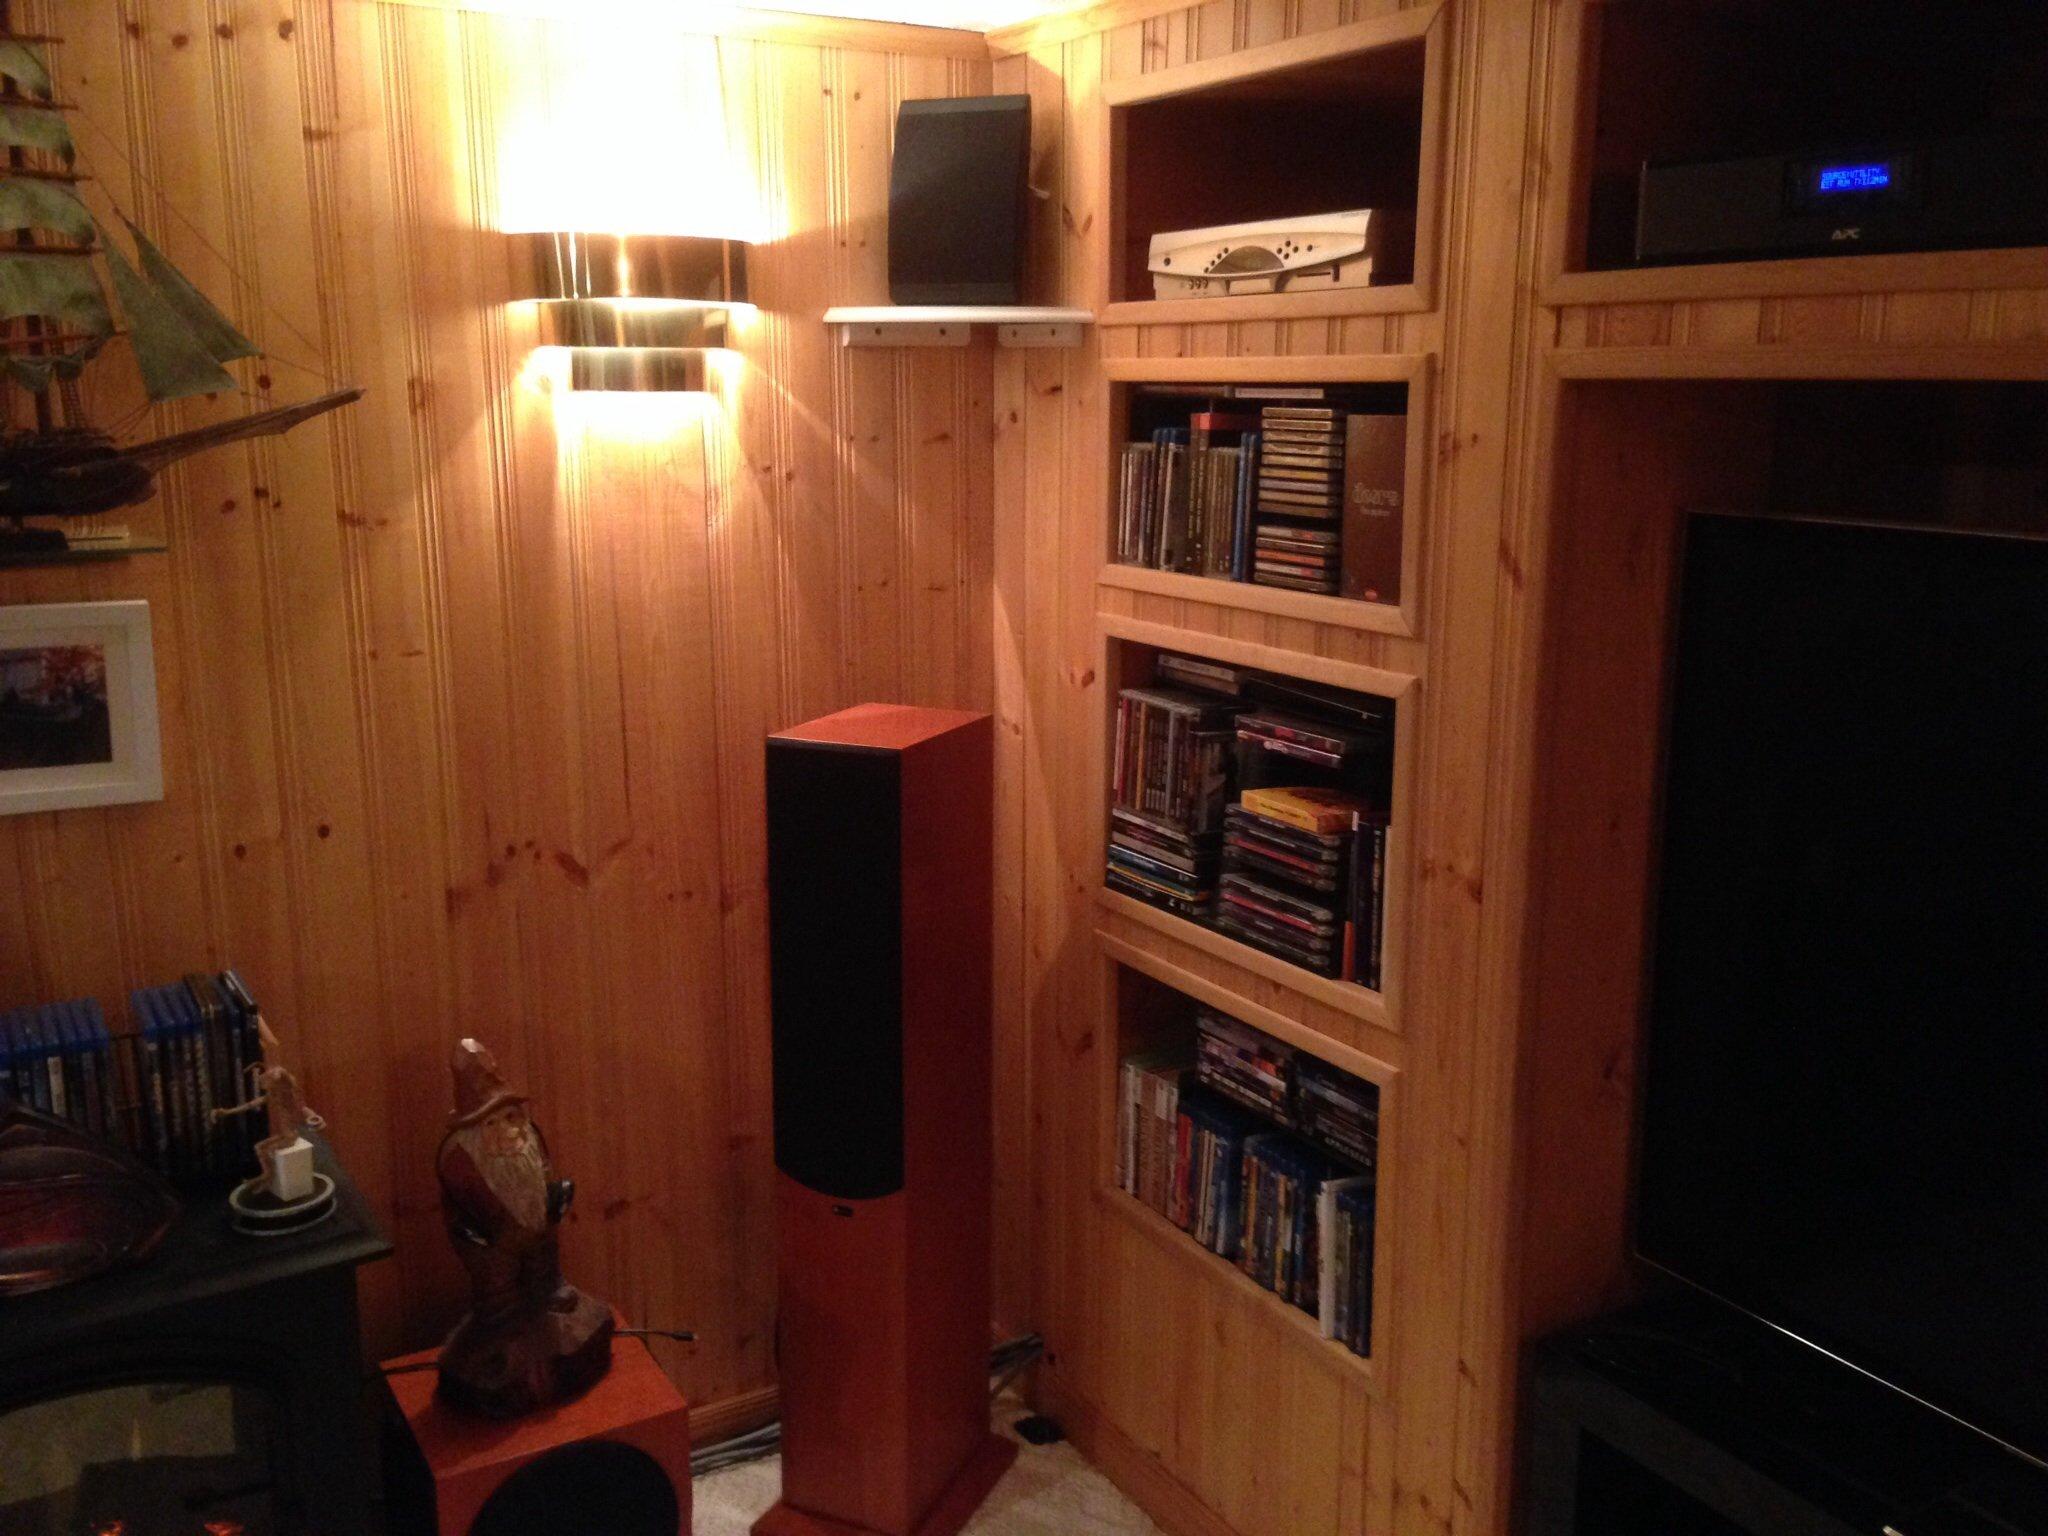 Added Height speakers.